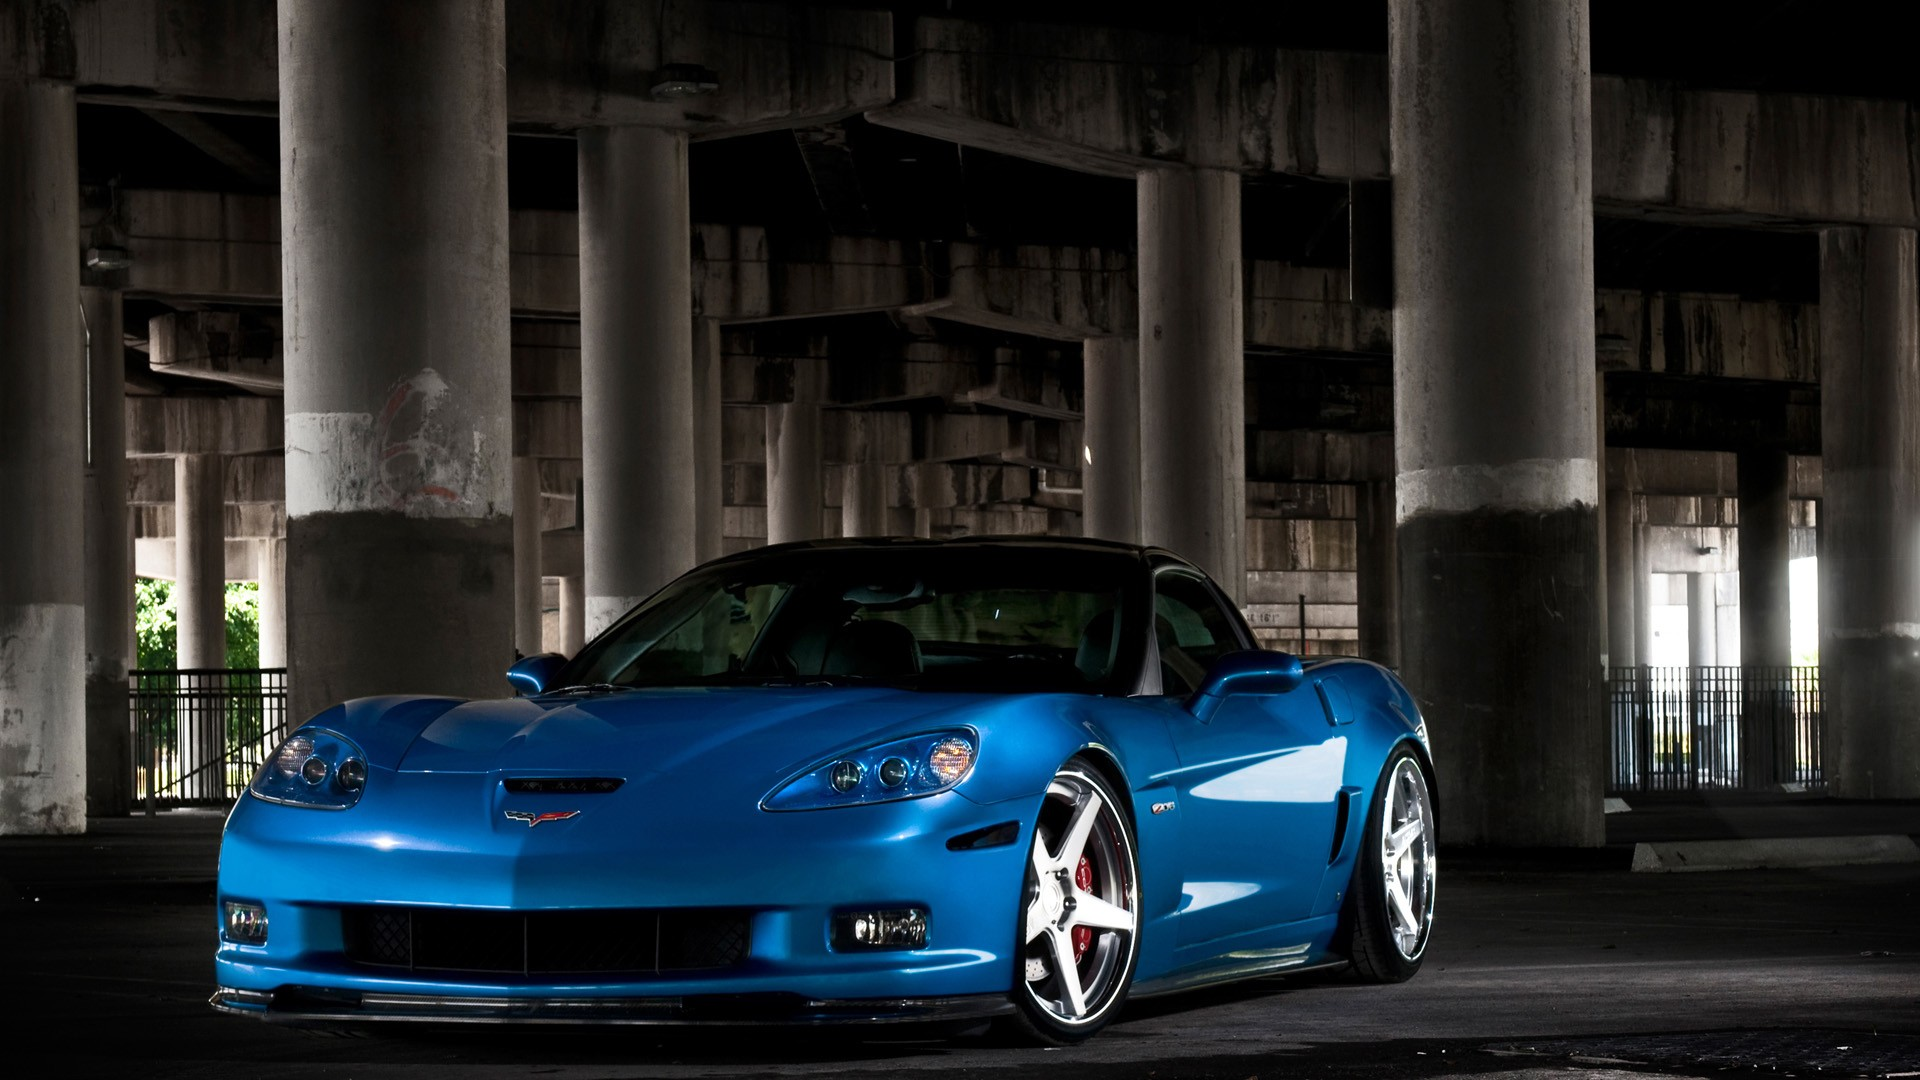 Download Cute Images For Wallpaper Chevrolet Corvette C6 Zr1 Car Wallpapers Hd Wallpapers